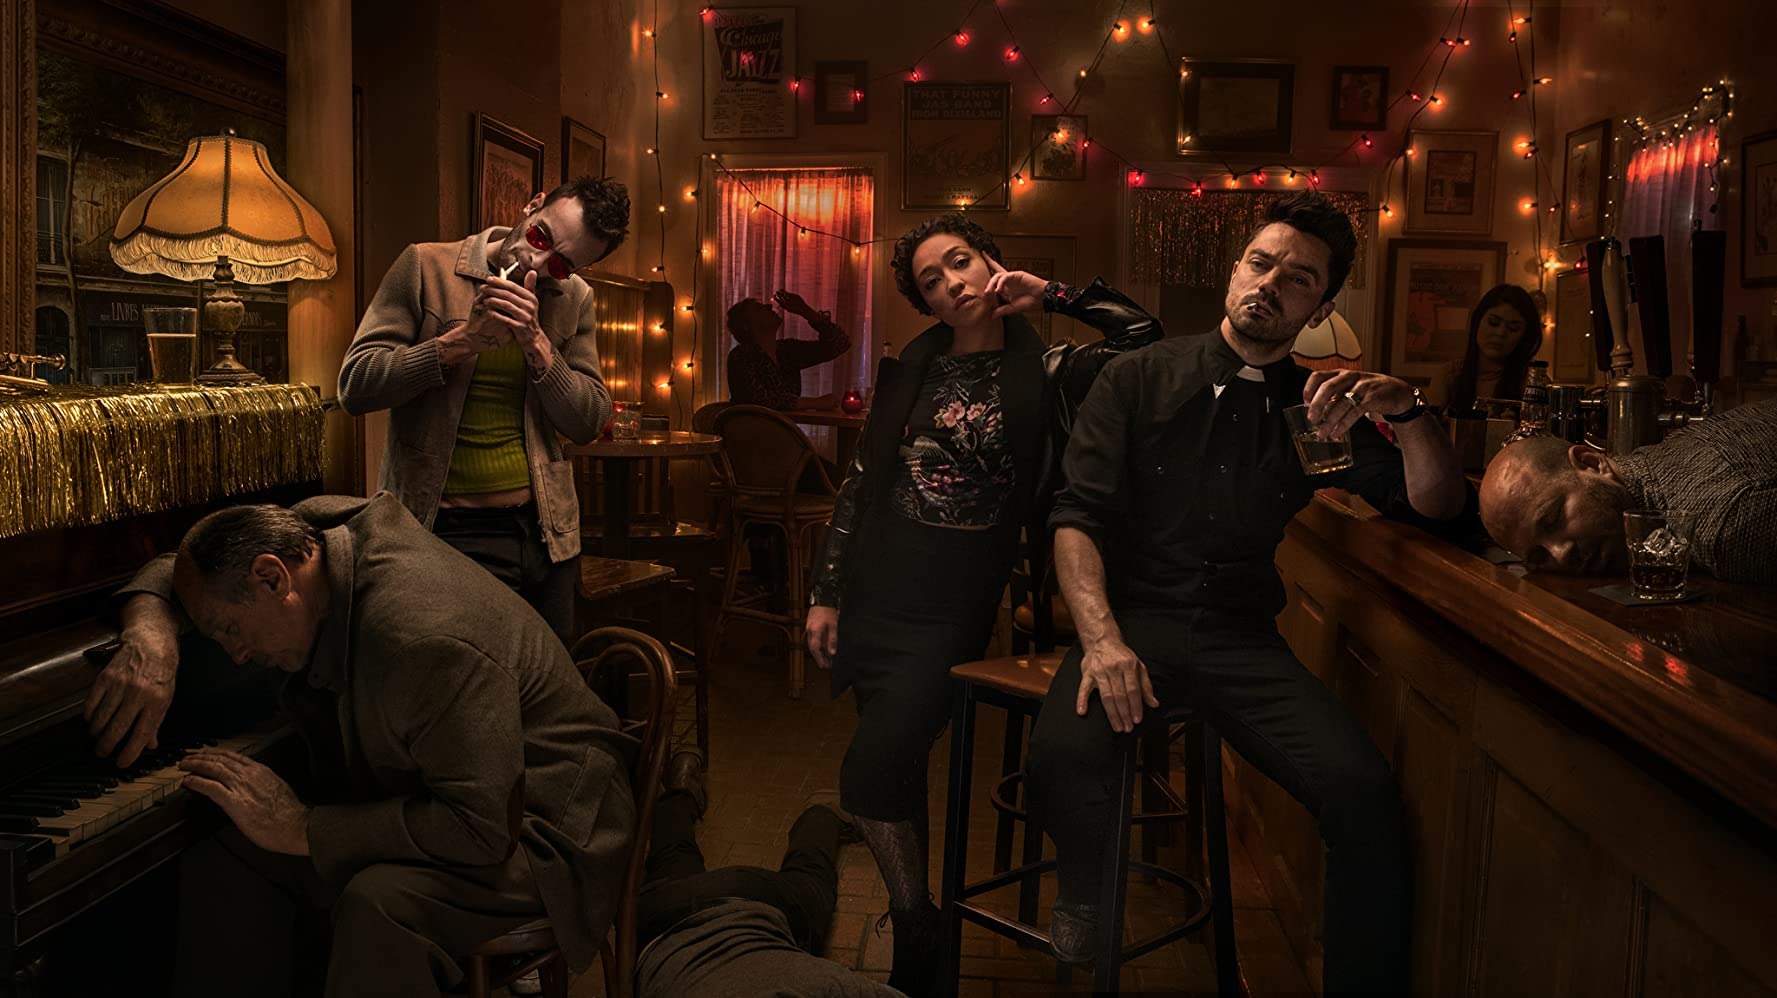 Preacher S02E01 – On the Road